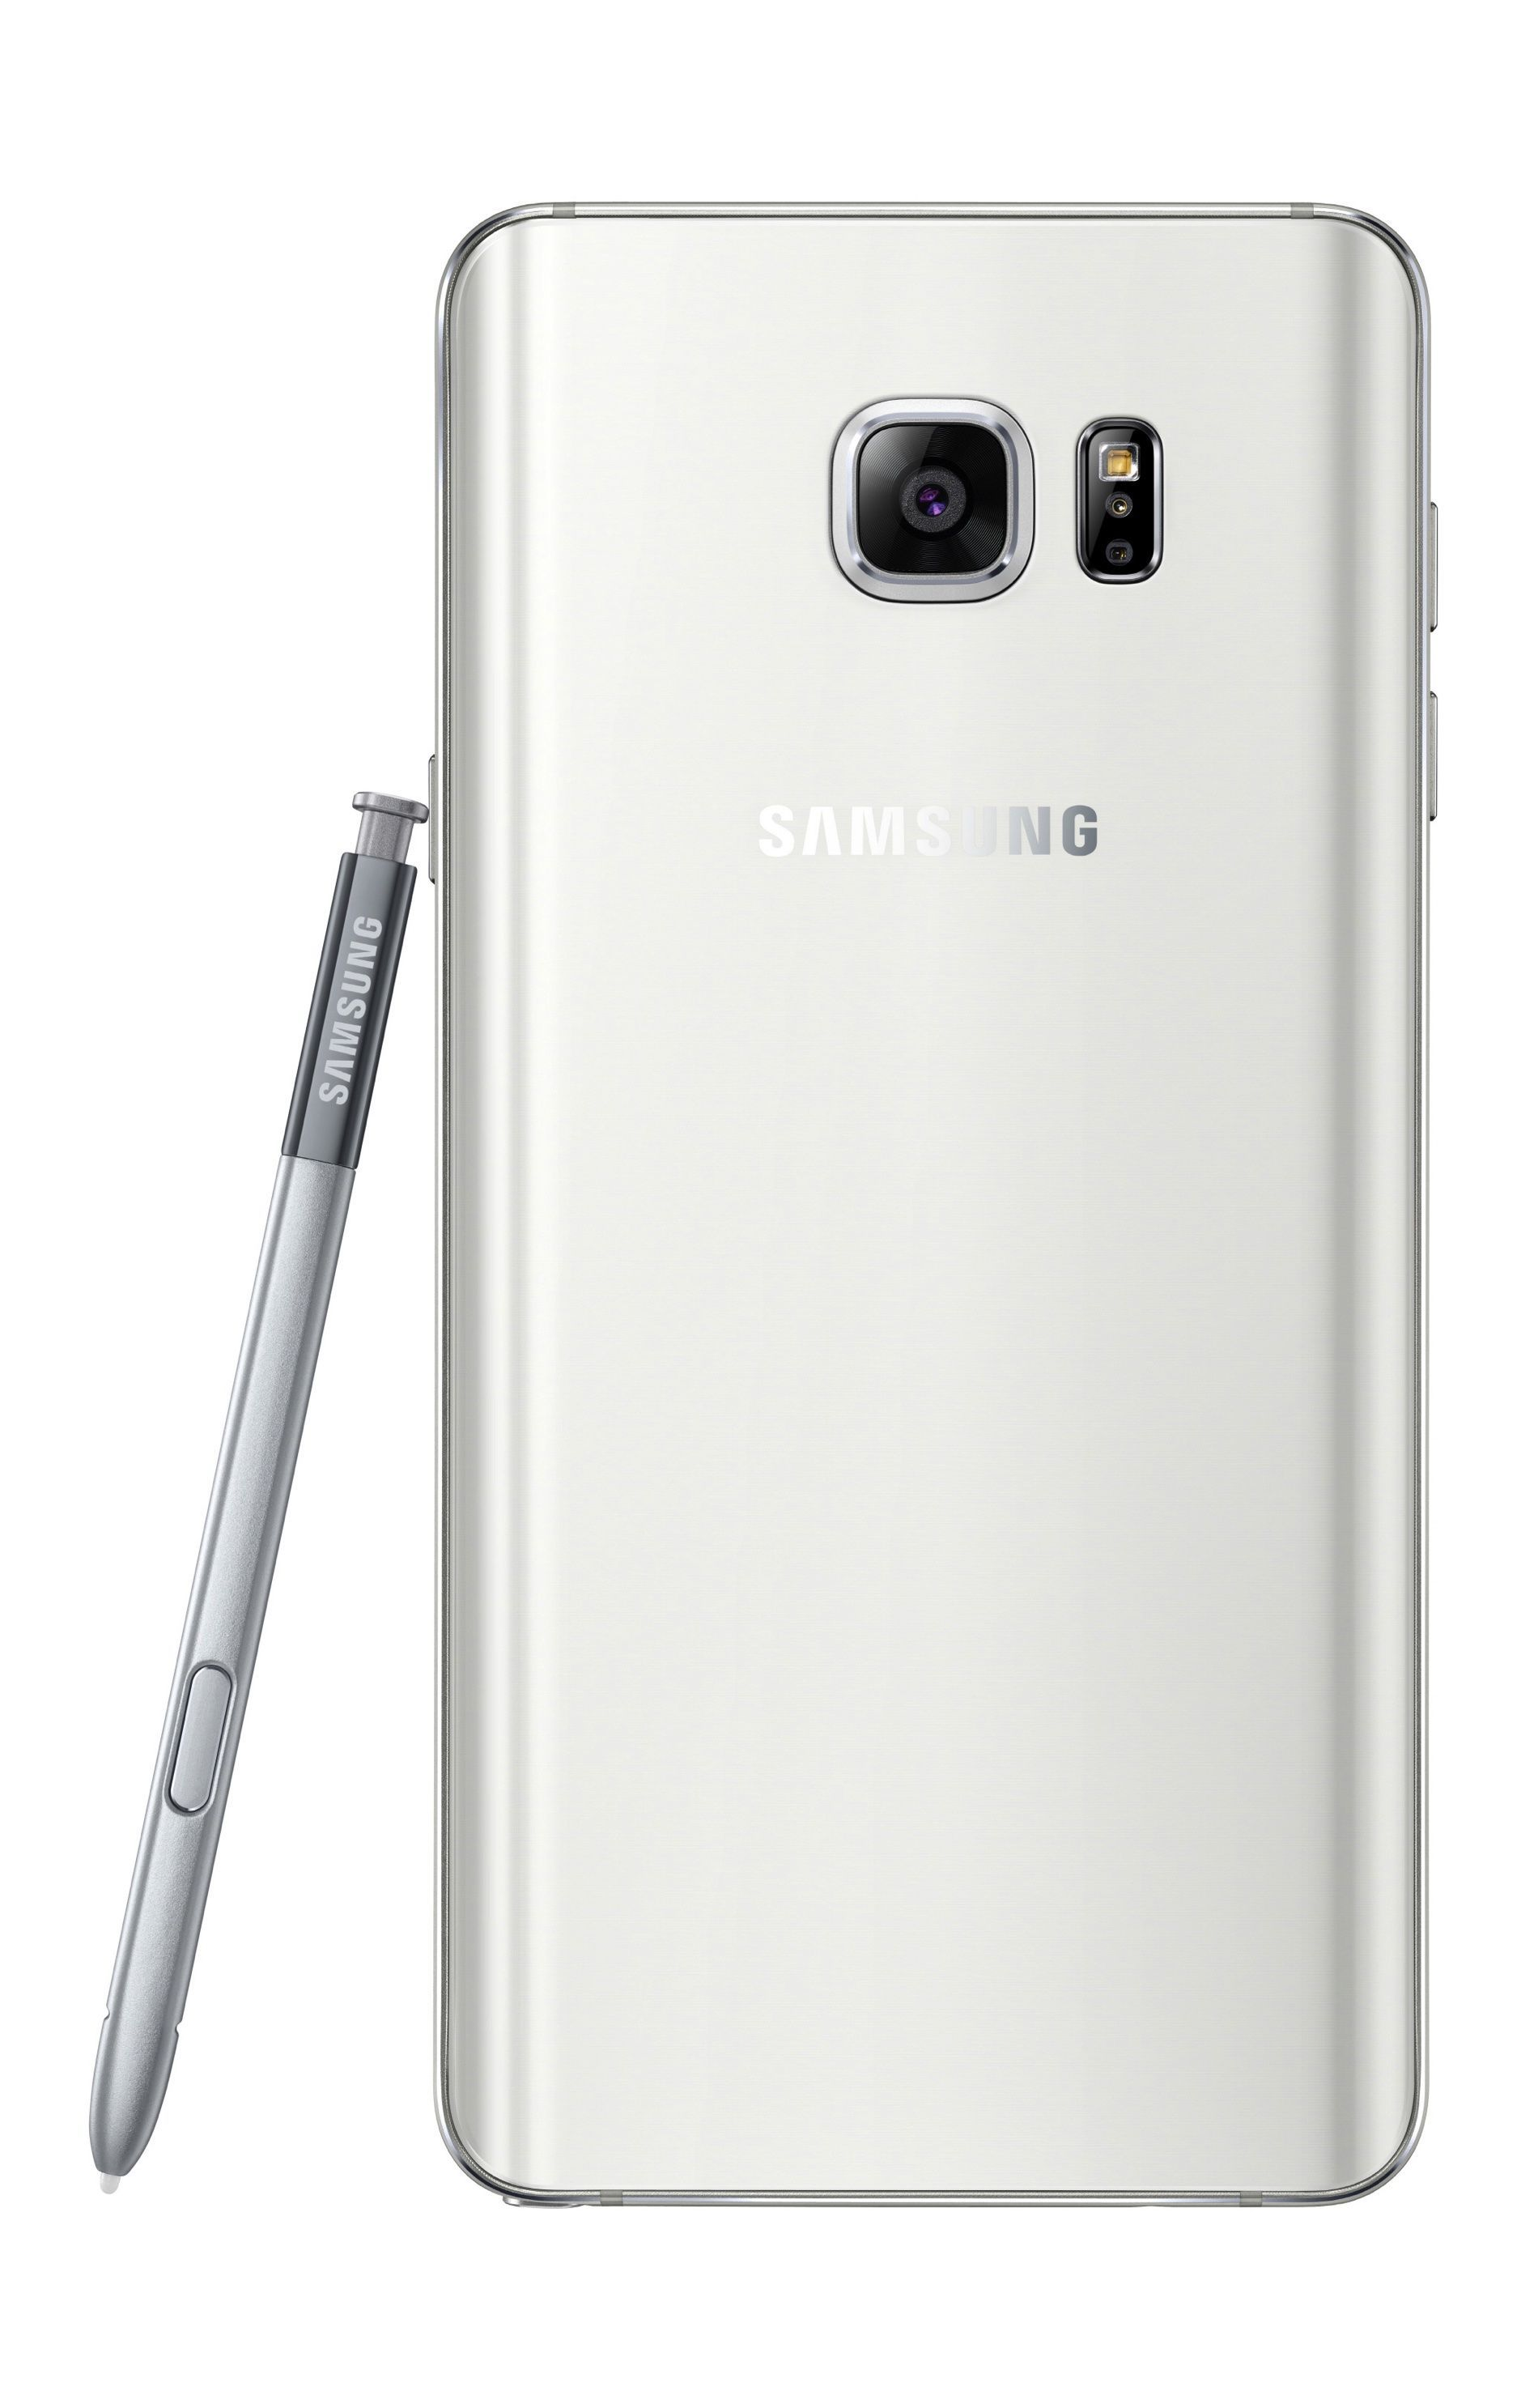 T Mobile Confirms Samsung Galaxy Note 5 Availability Samsung Galaxy Phones Samsung Galaxy Samsung